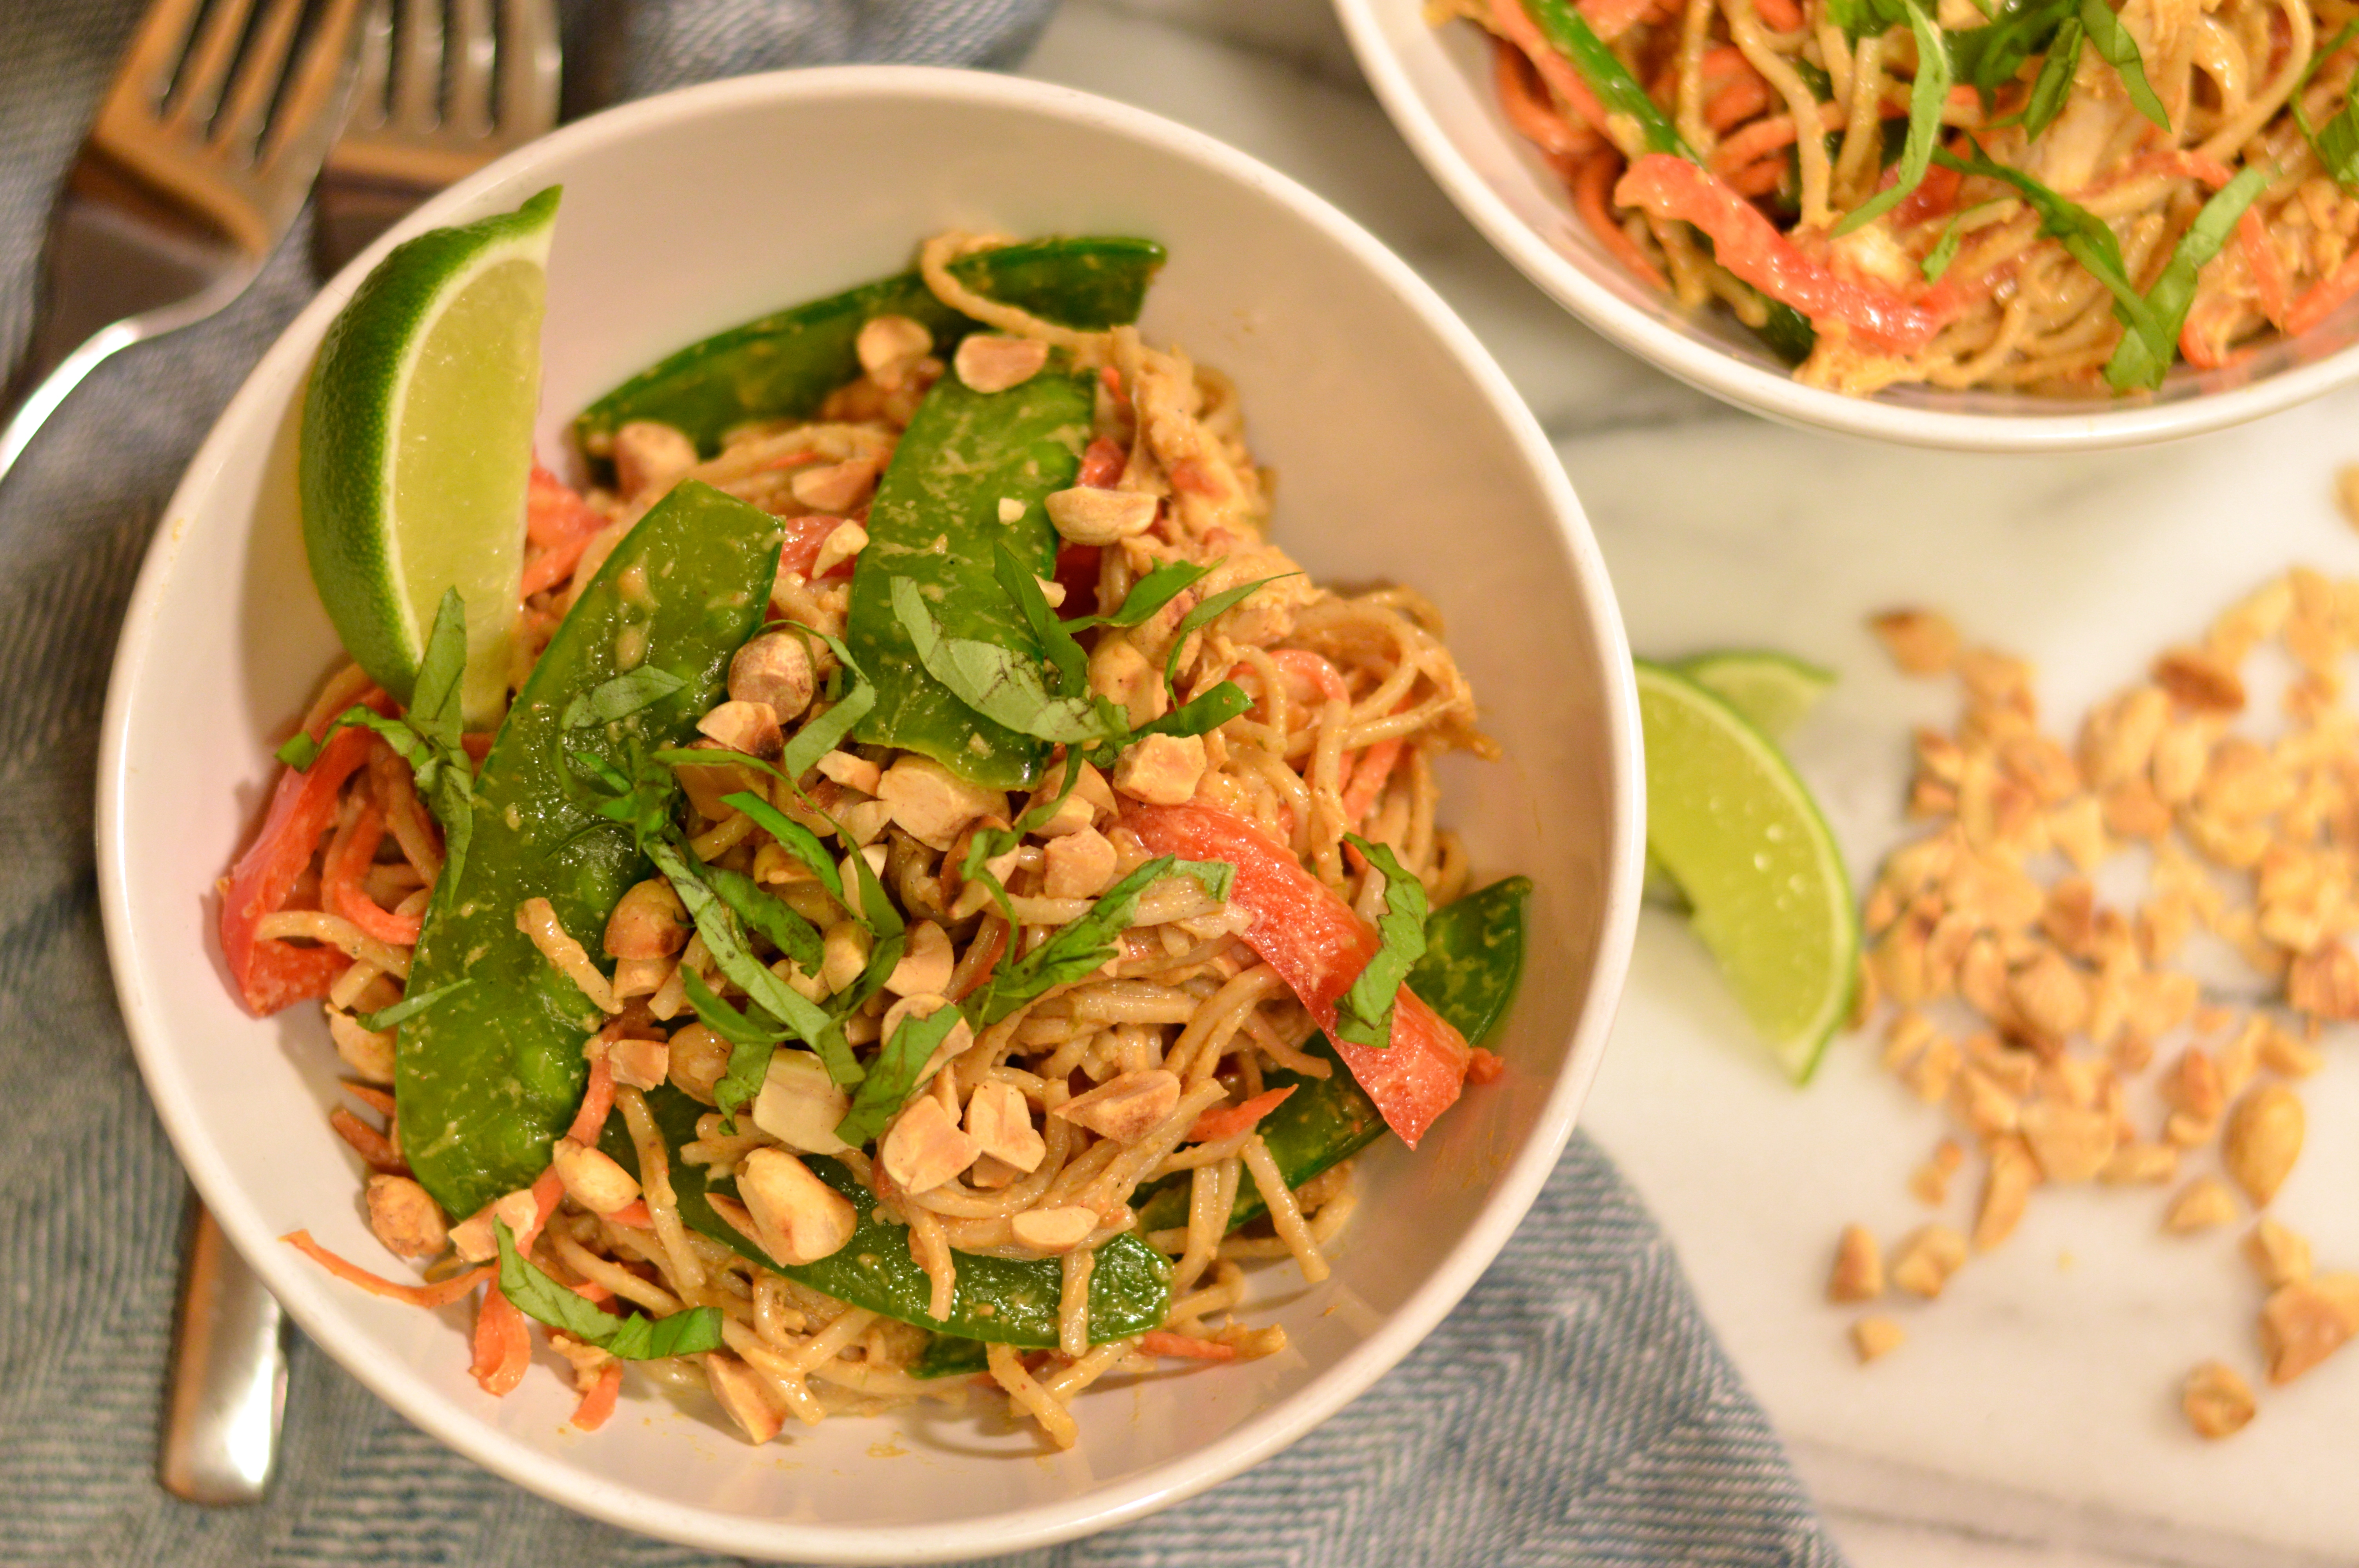 spicy peanut sauce zucchini noodle salad with of her lovely zucchini ...